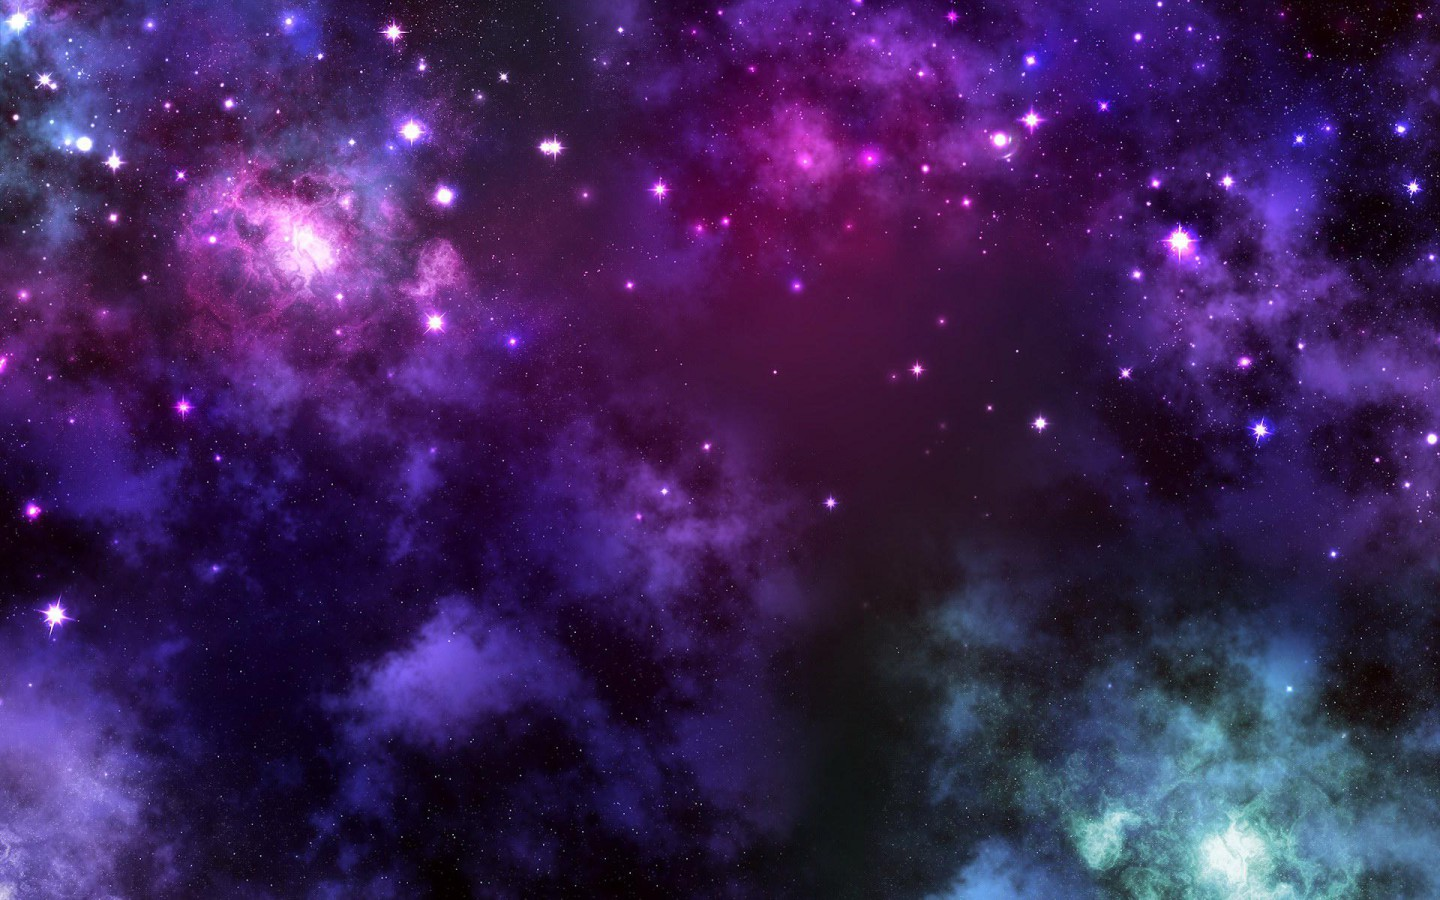 Outer Space Background Images 6 HD Wallpapers Sides in Space 1440x900